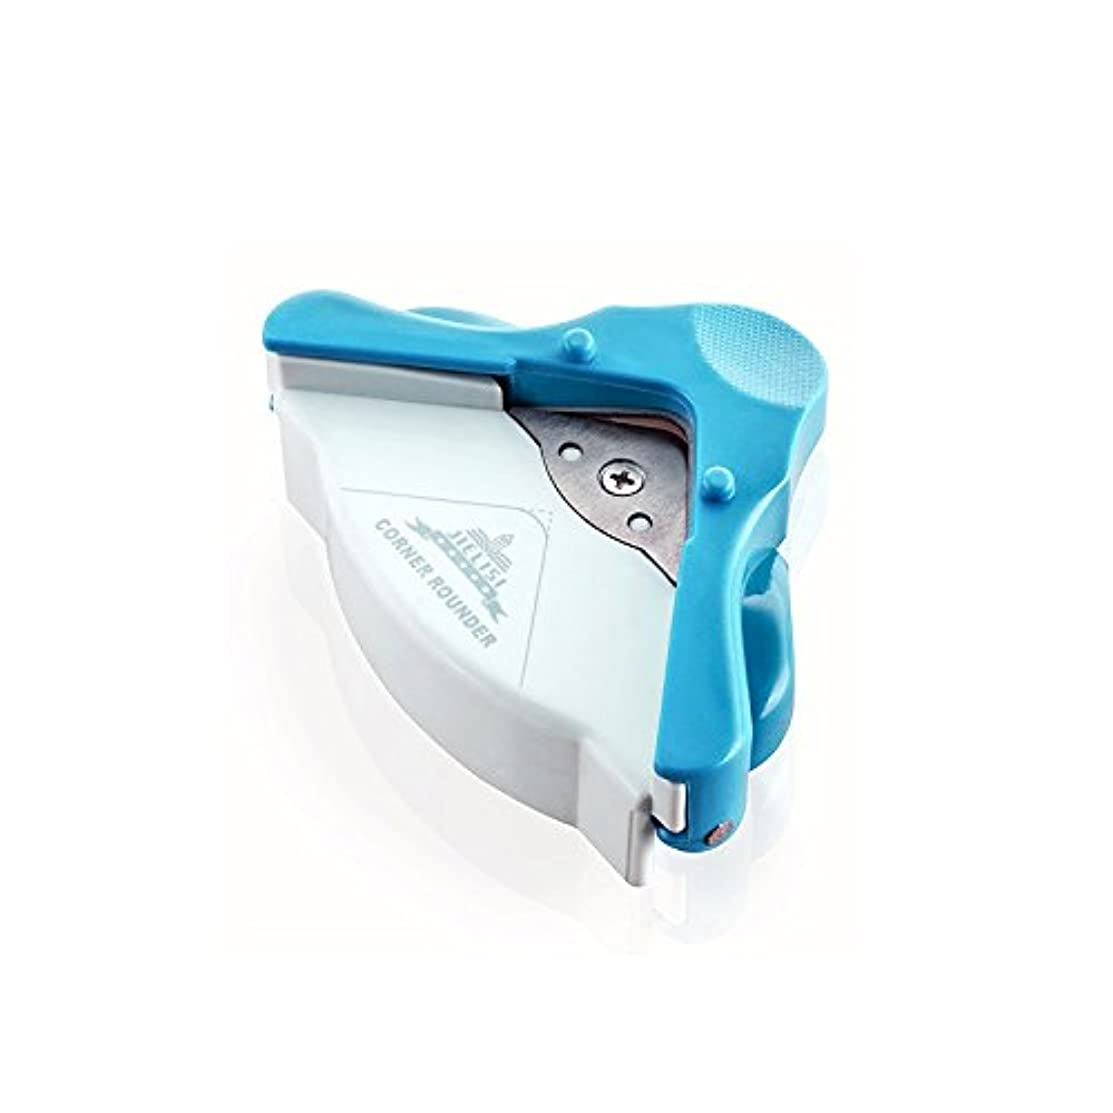 Corner Rounder with Chips Tray, Chrir.W Angle Eater Cutter Tool for Scrapbooking,Photo and Paper(Blue, 5mm)